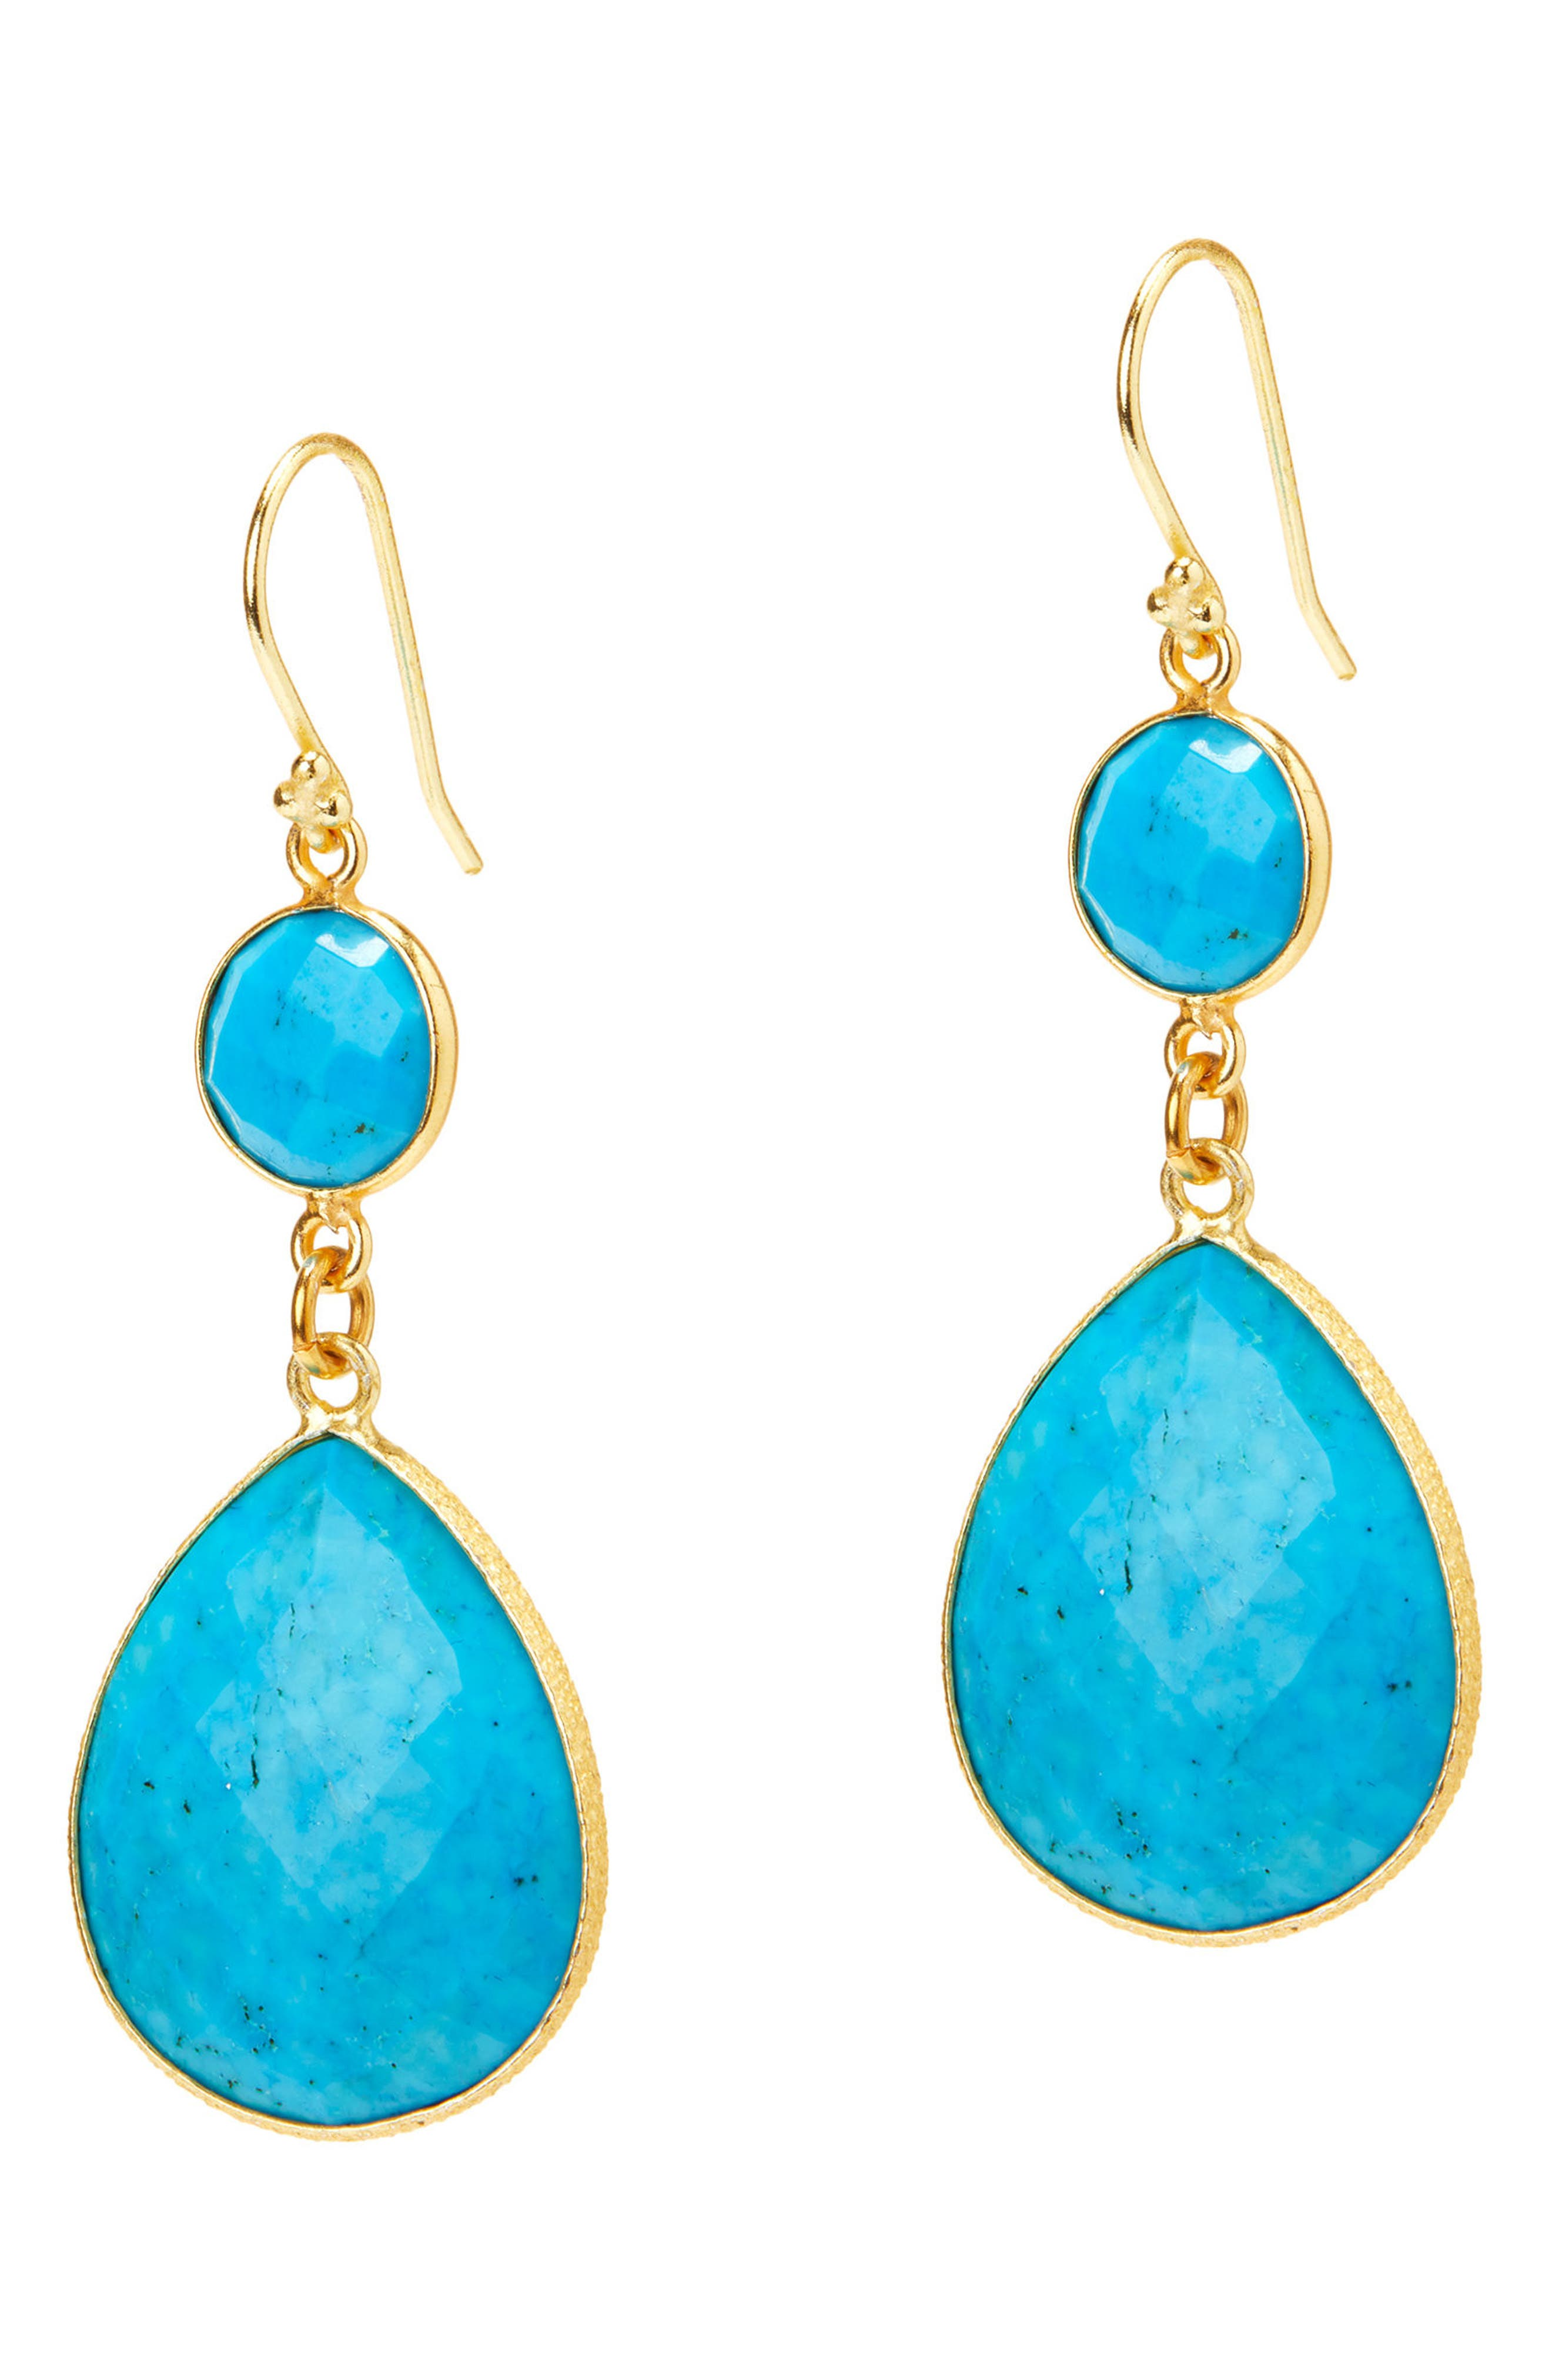 Plumeria Double Drop Earrings,                             Main thumbnail 1, color,                             TURQUOISE